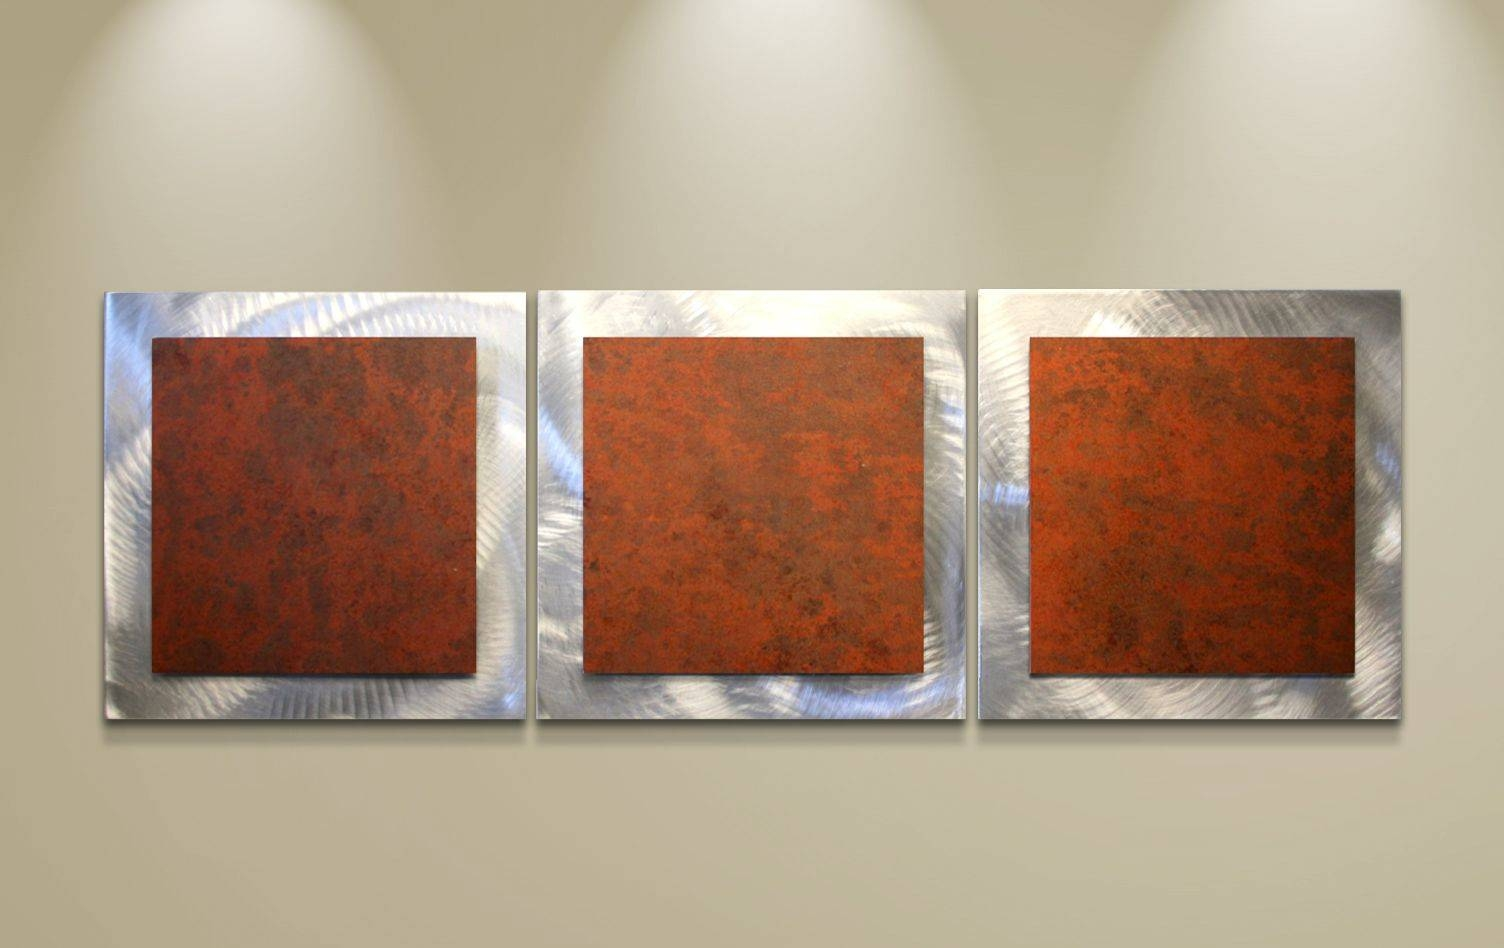 Rusty Essence | Abstract Wall Art | Minimalist Steel Sculpture Inside Most Recent Rusted Metal Wall Art (Gallery 1 of 20)